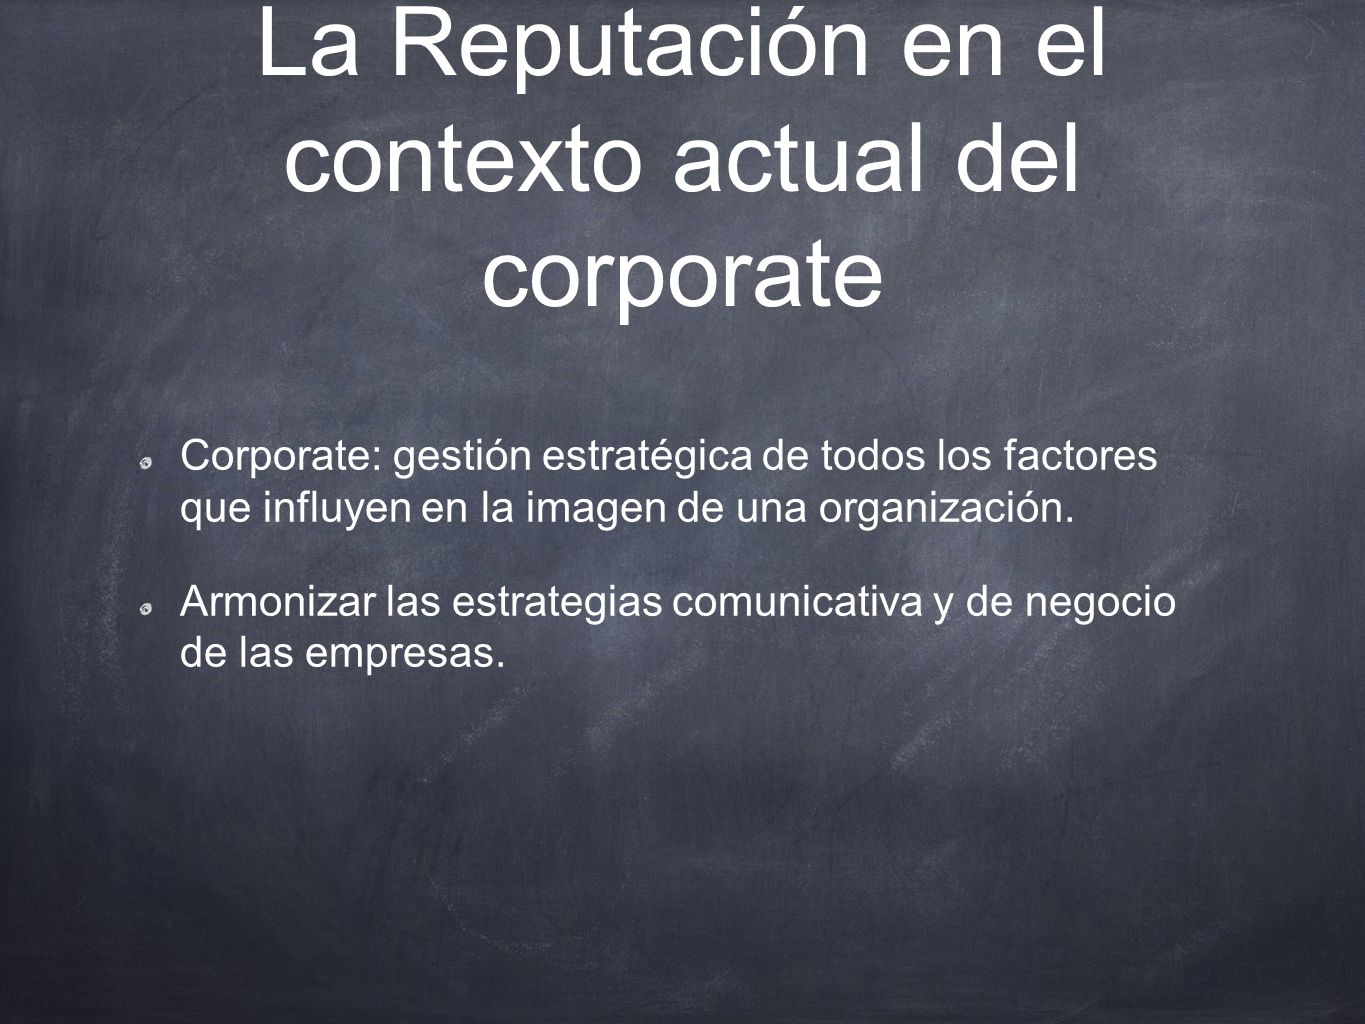 La Reputación en el contexto actual del corporate